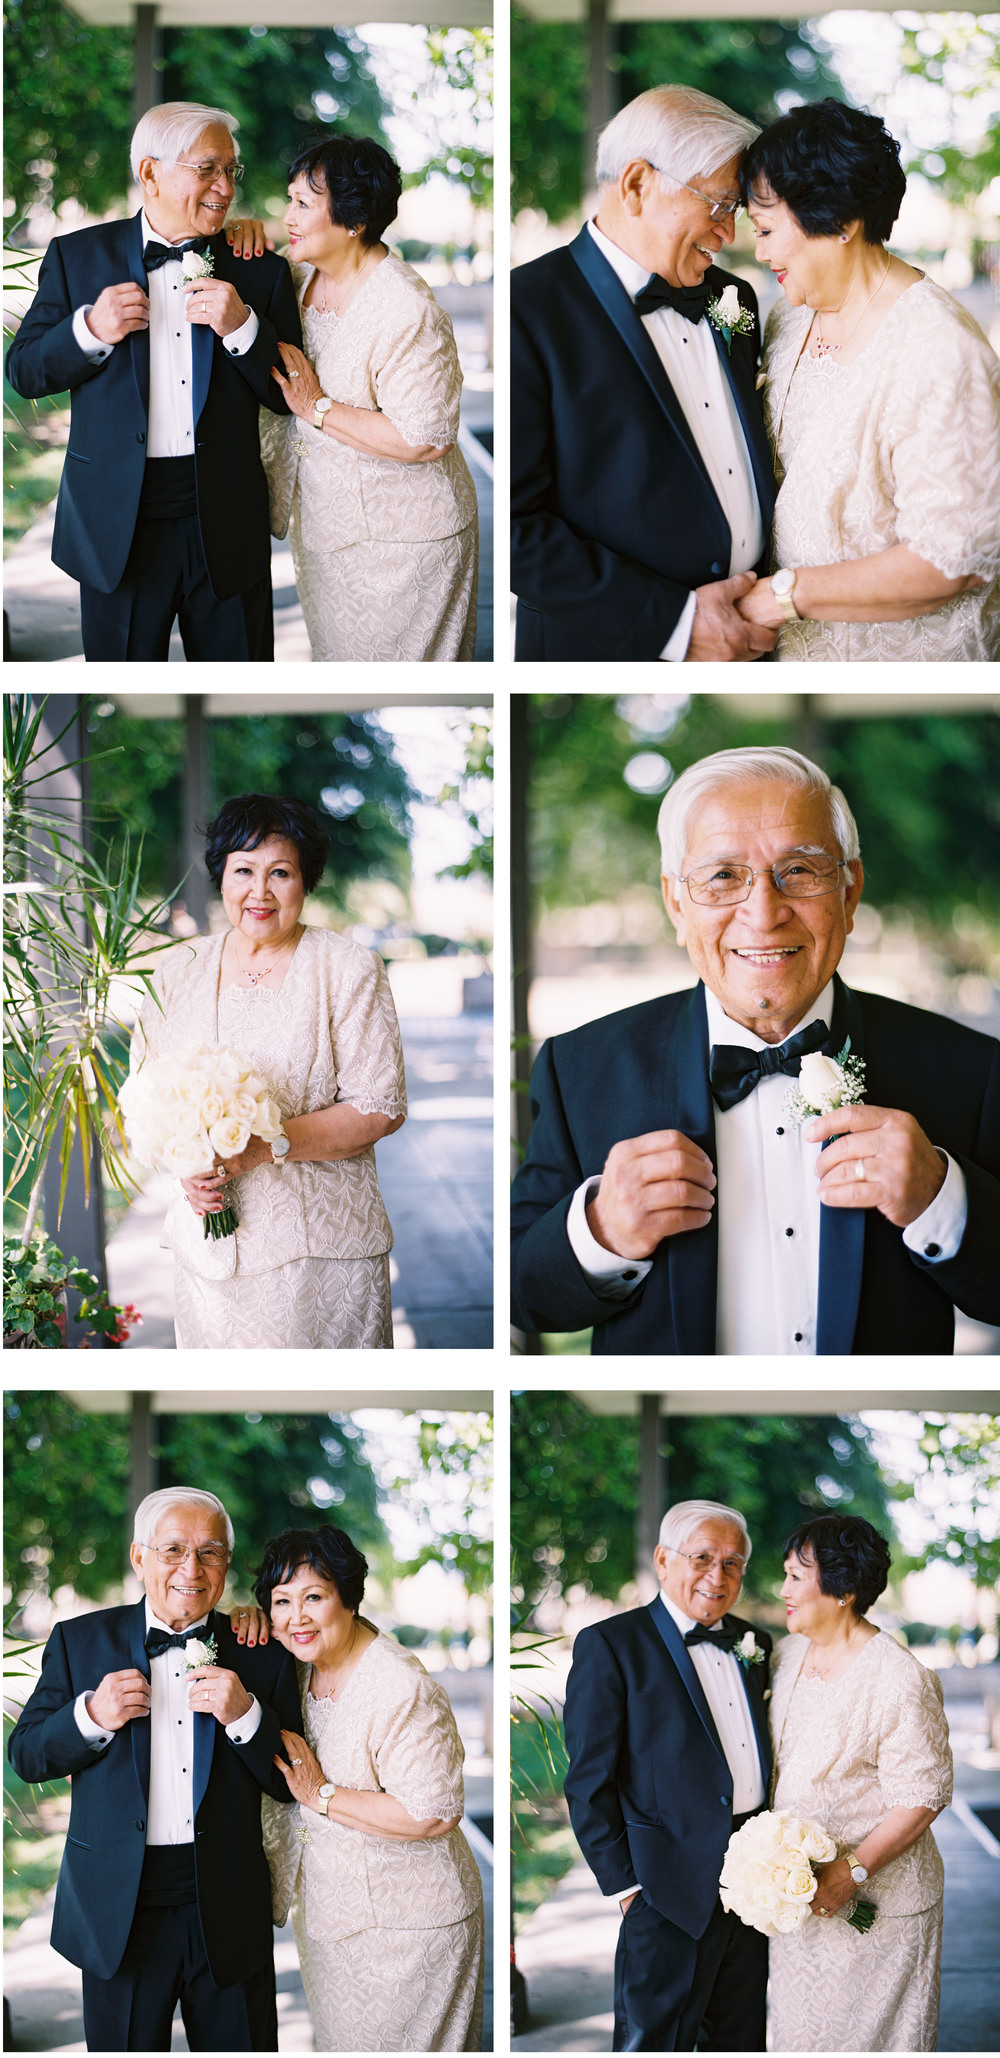 Dio Erlindas 50th Wedding Anniversary Linda Tran Photography